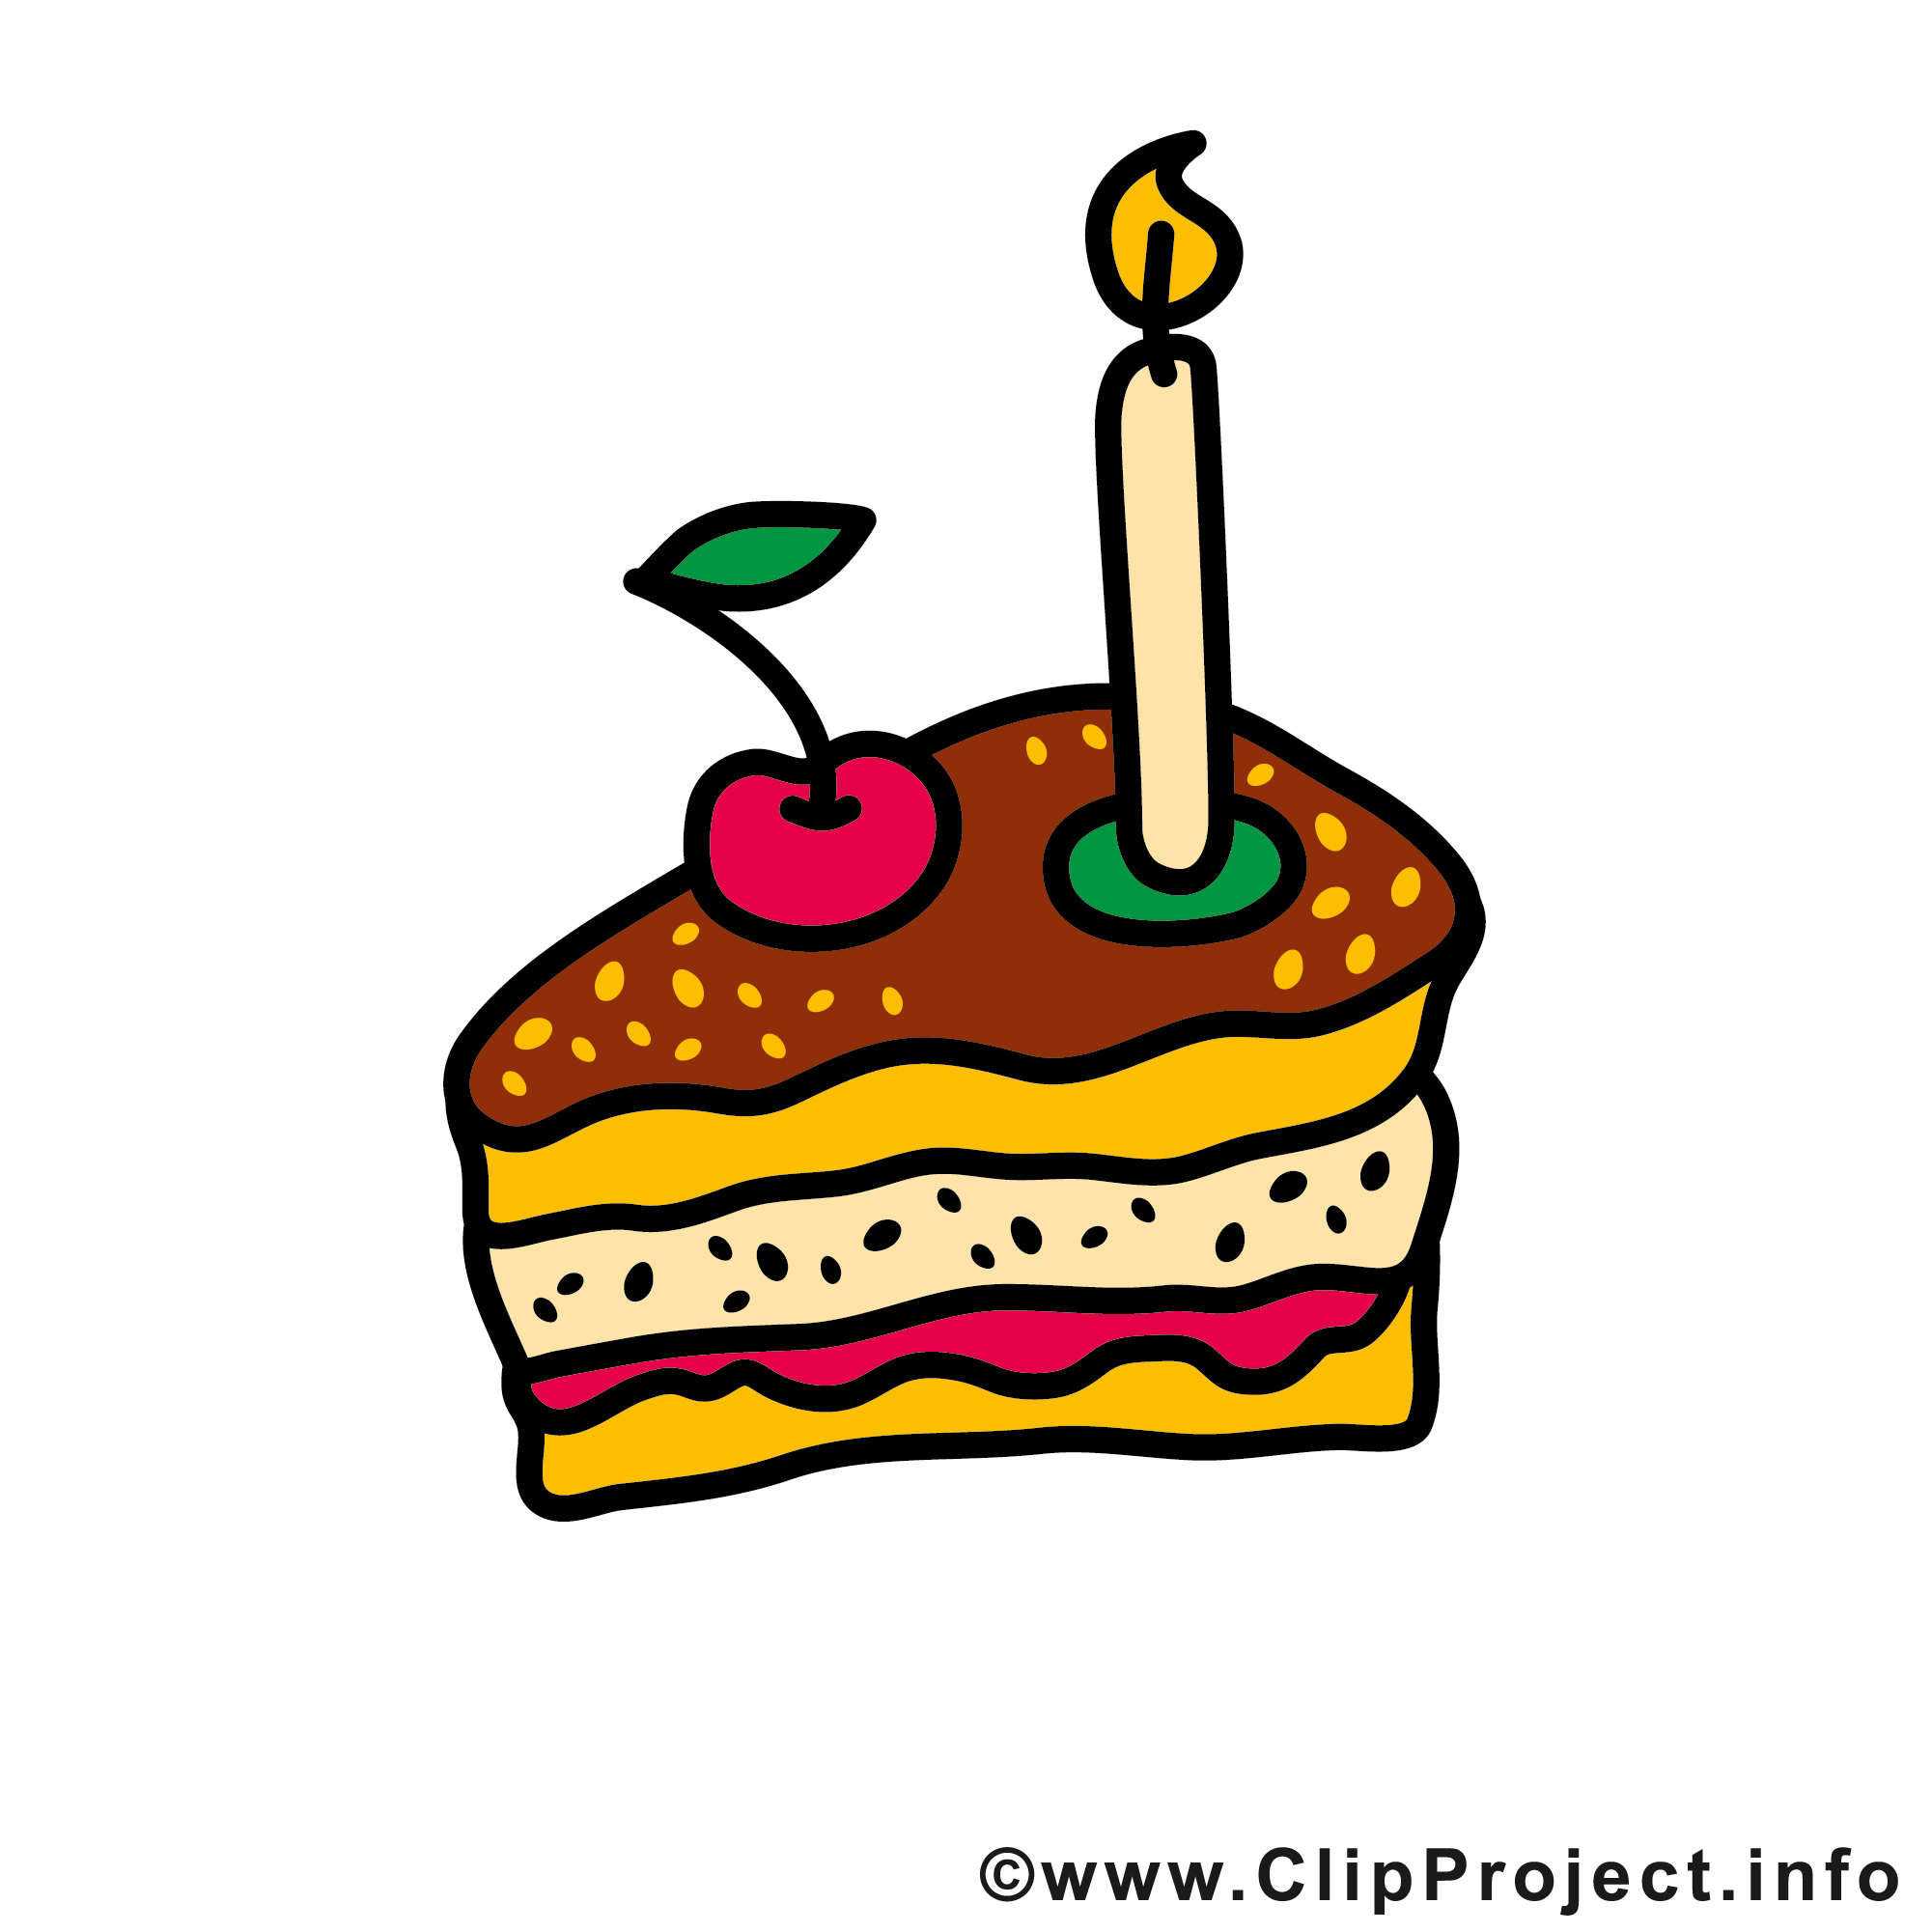 clipart geburtstag - photo #6